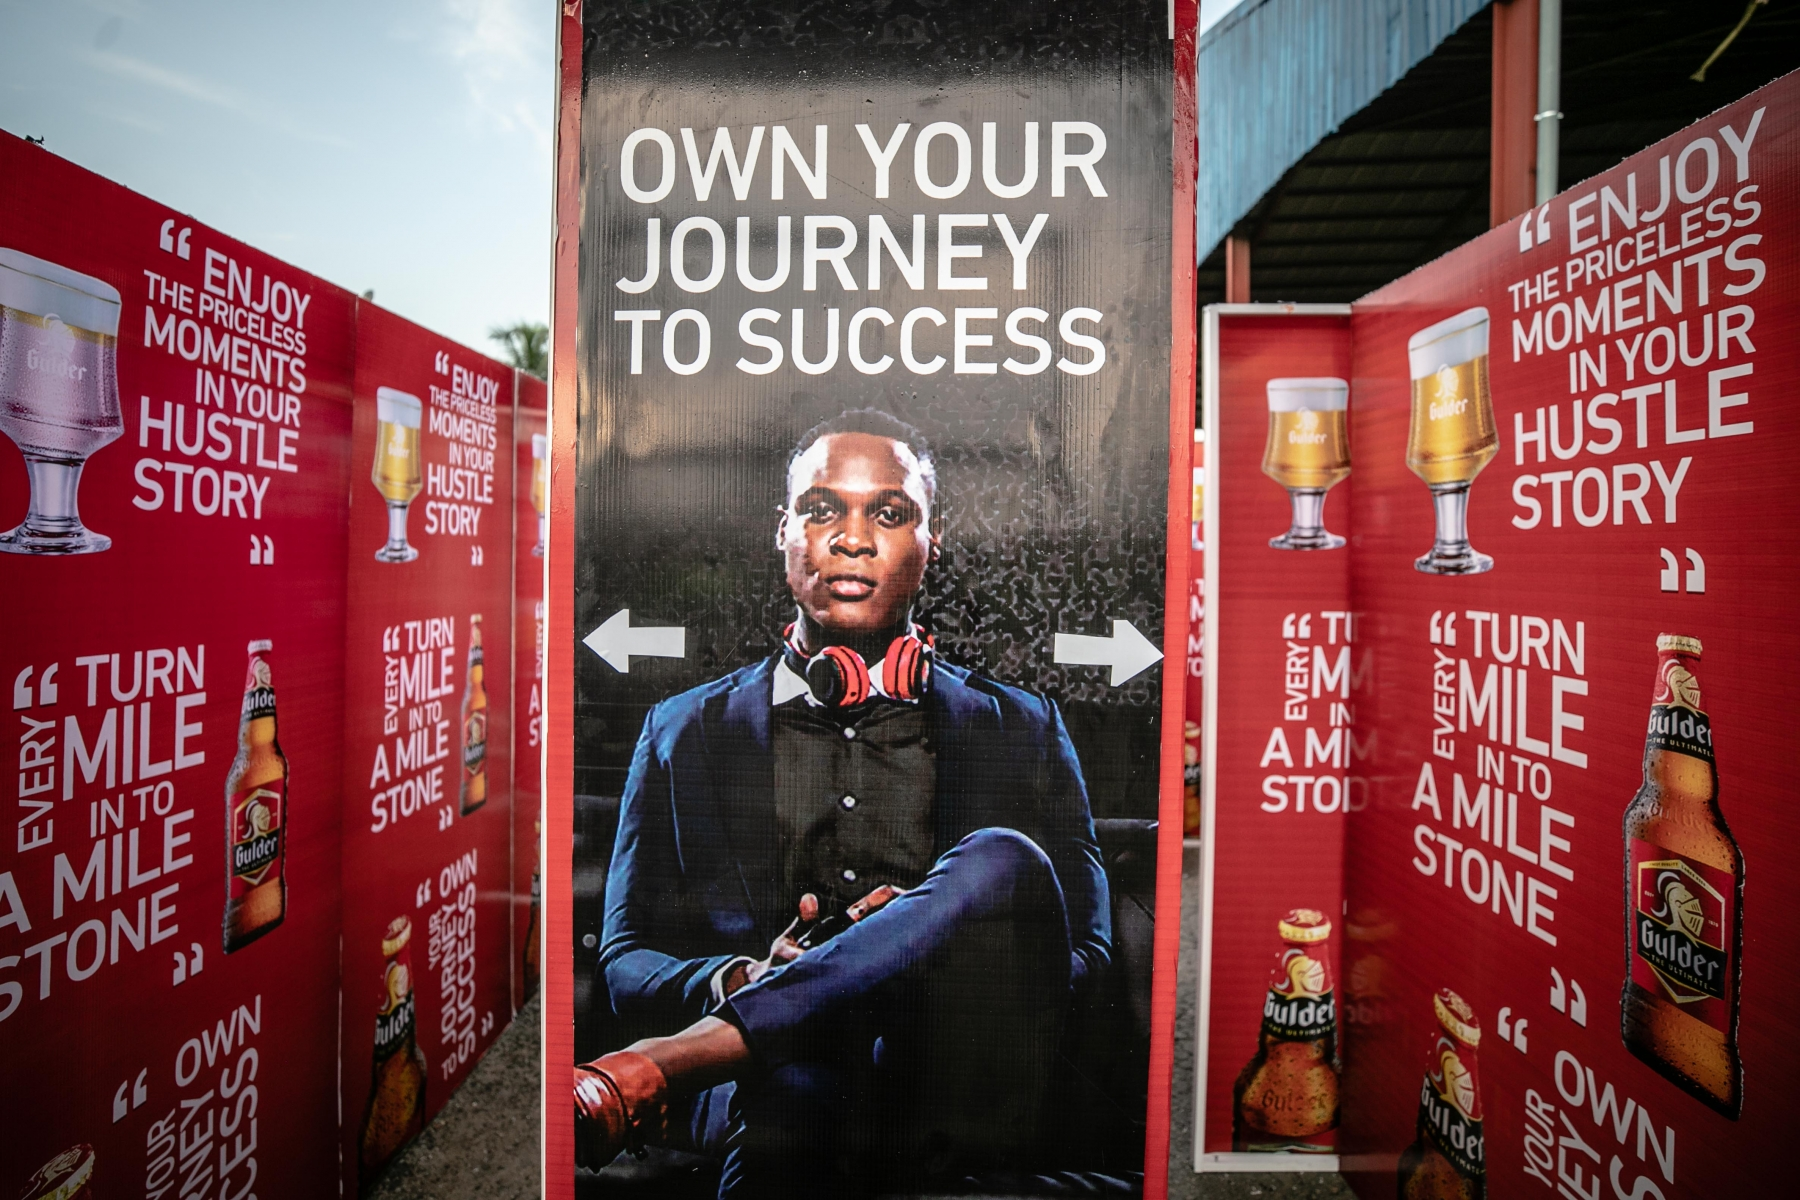 Own Your Journey to Success Maze